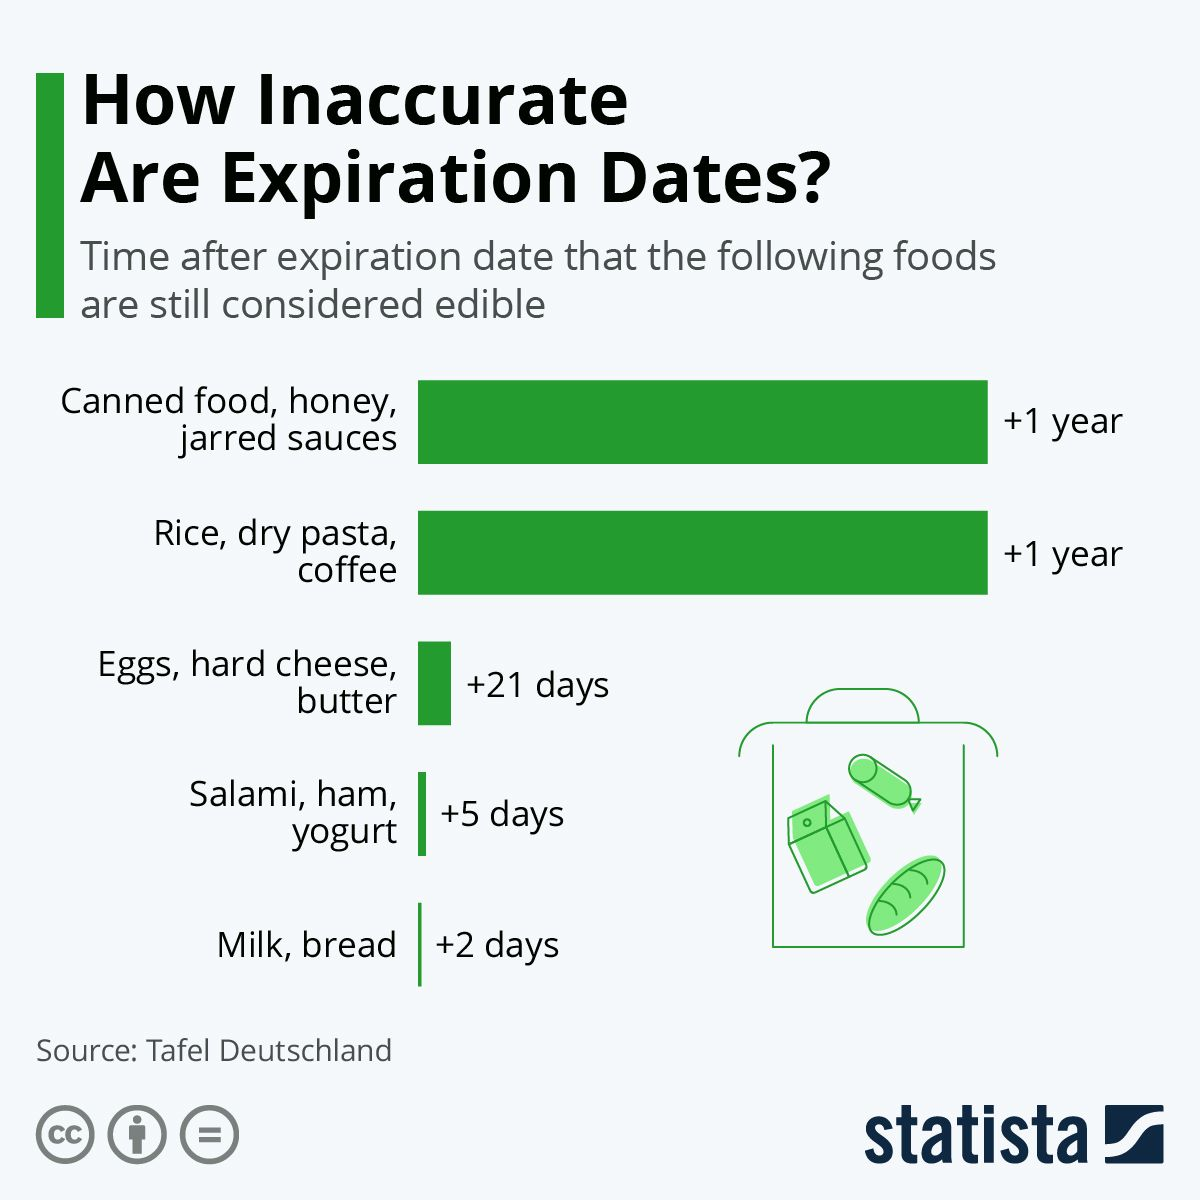 How Inaccurate Are Expiration Dates? in 2020 Infographic